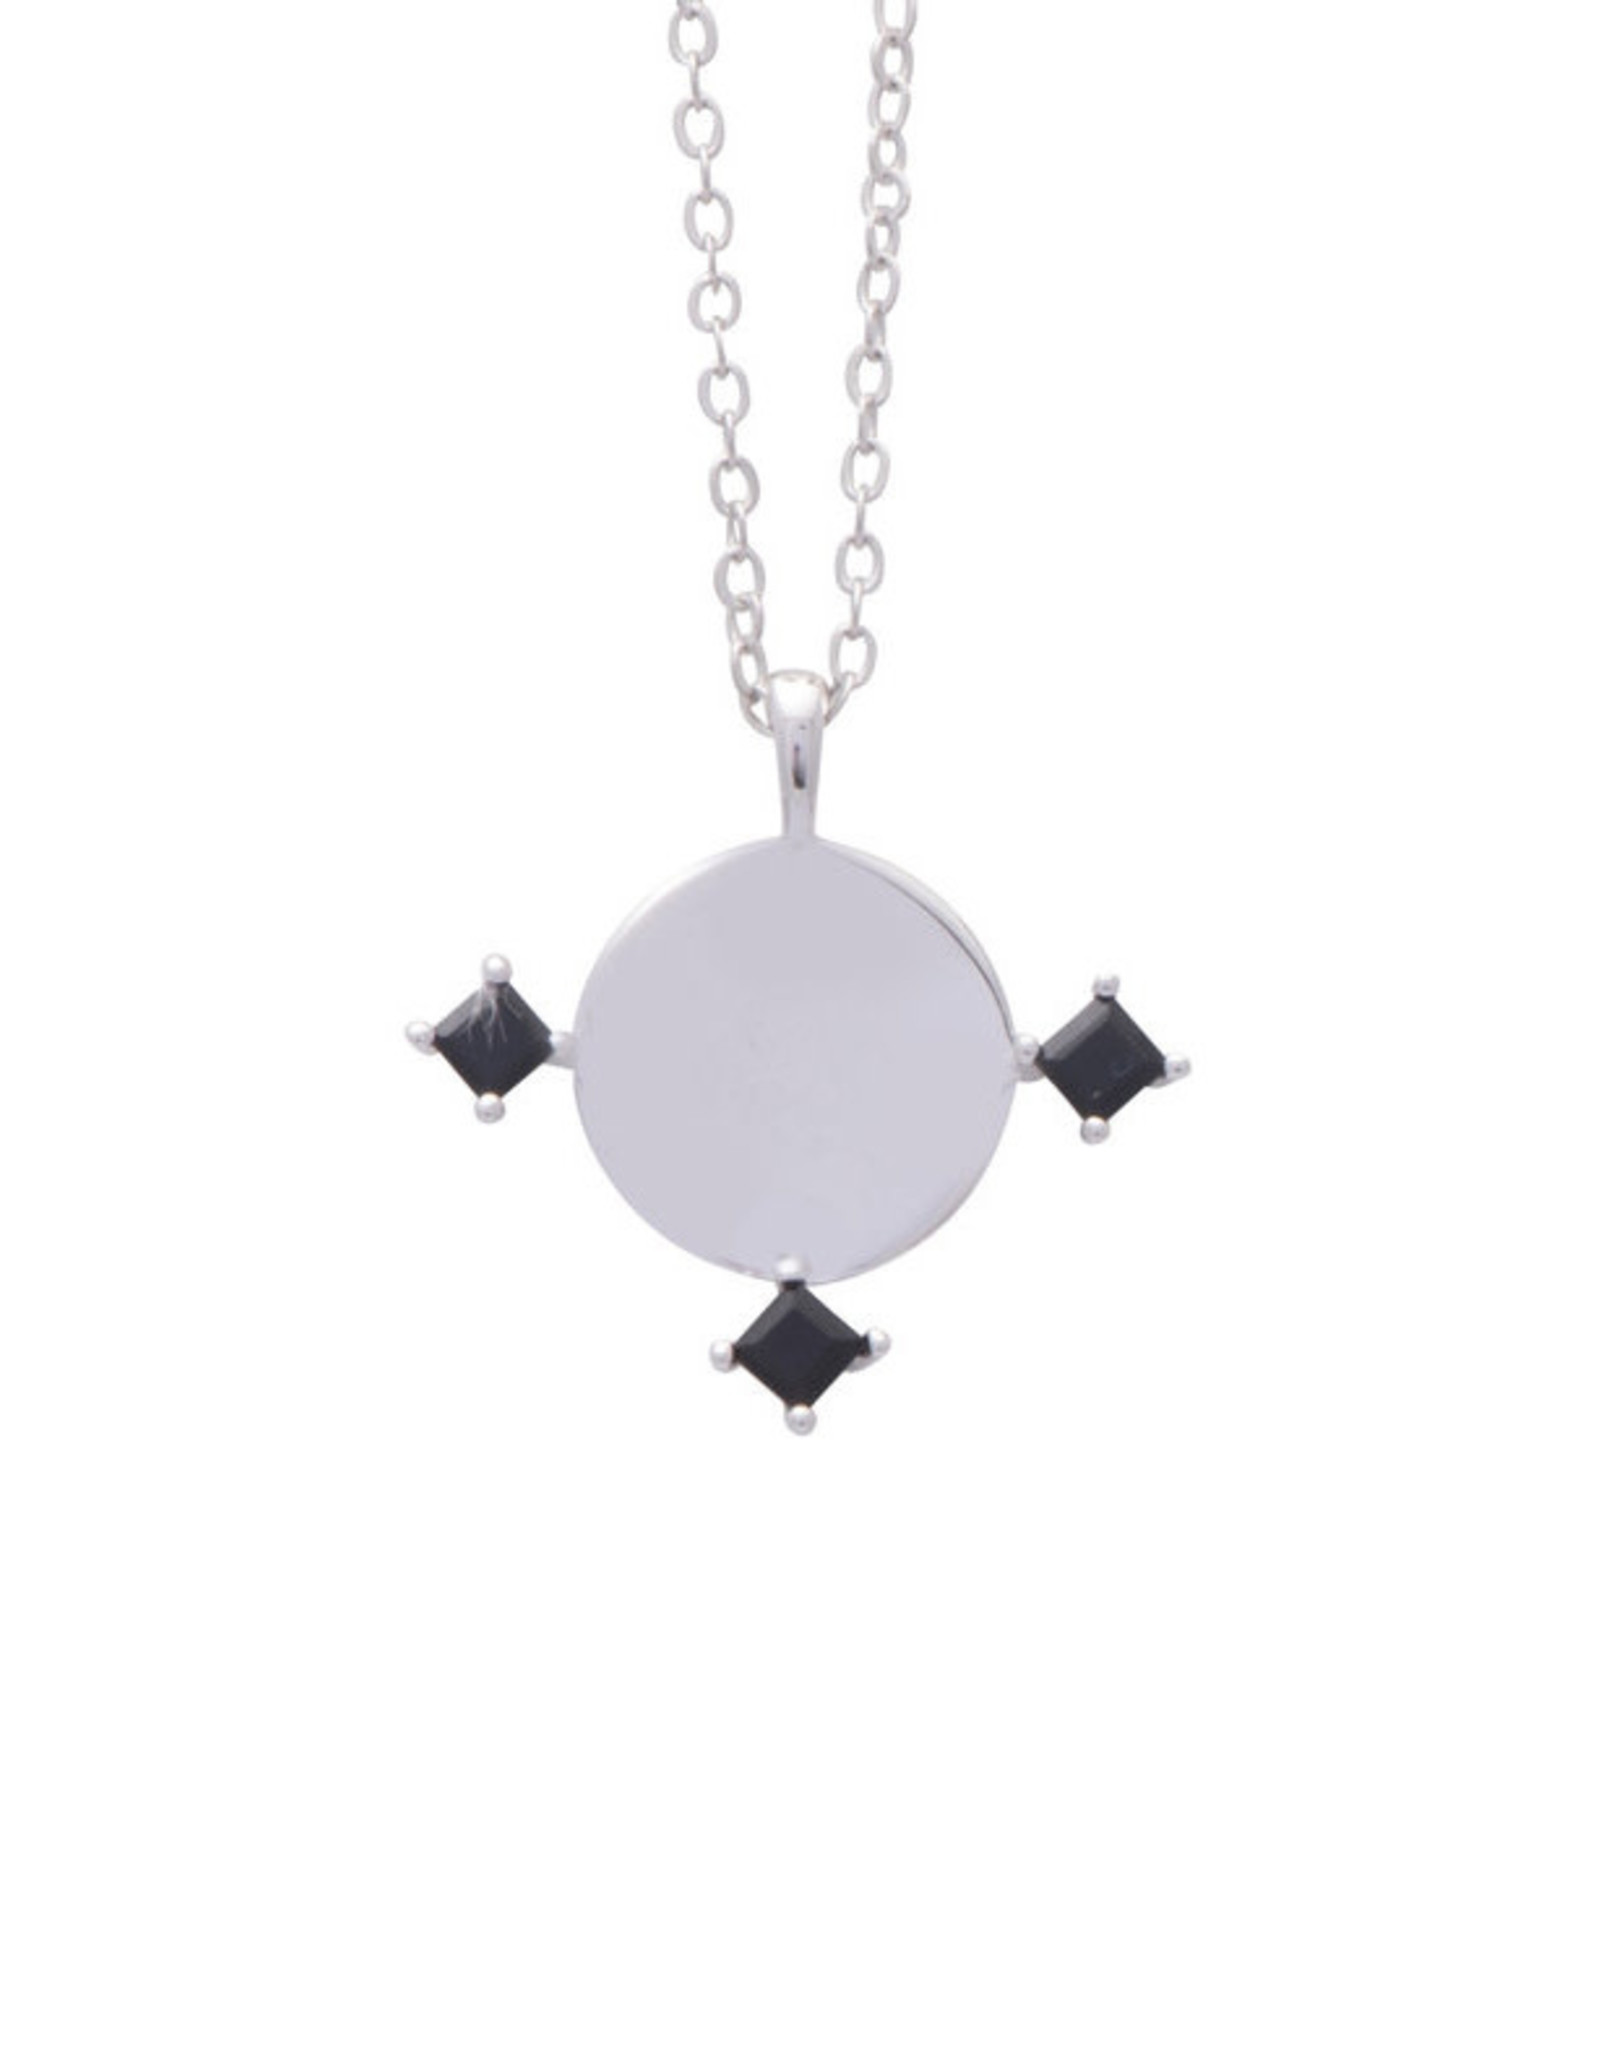 Sarah Mulder Jewelry Silver Imperial Necklace - Onyx